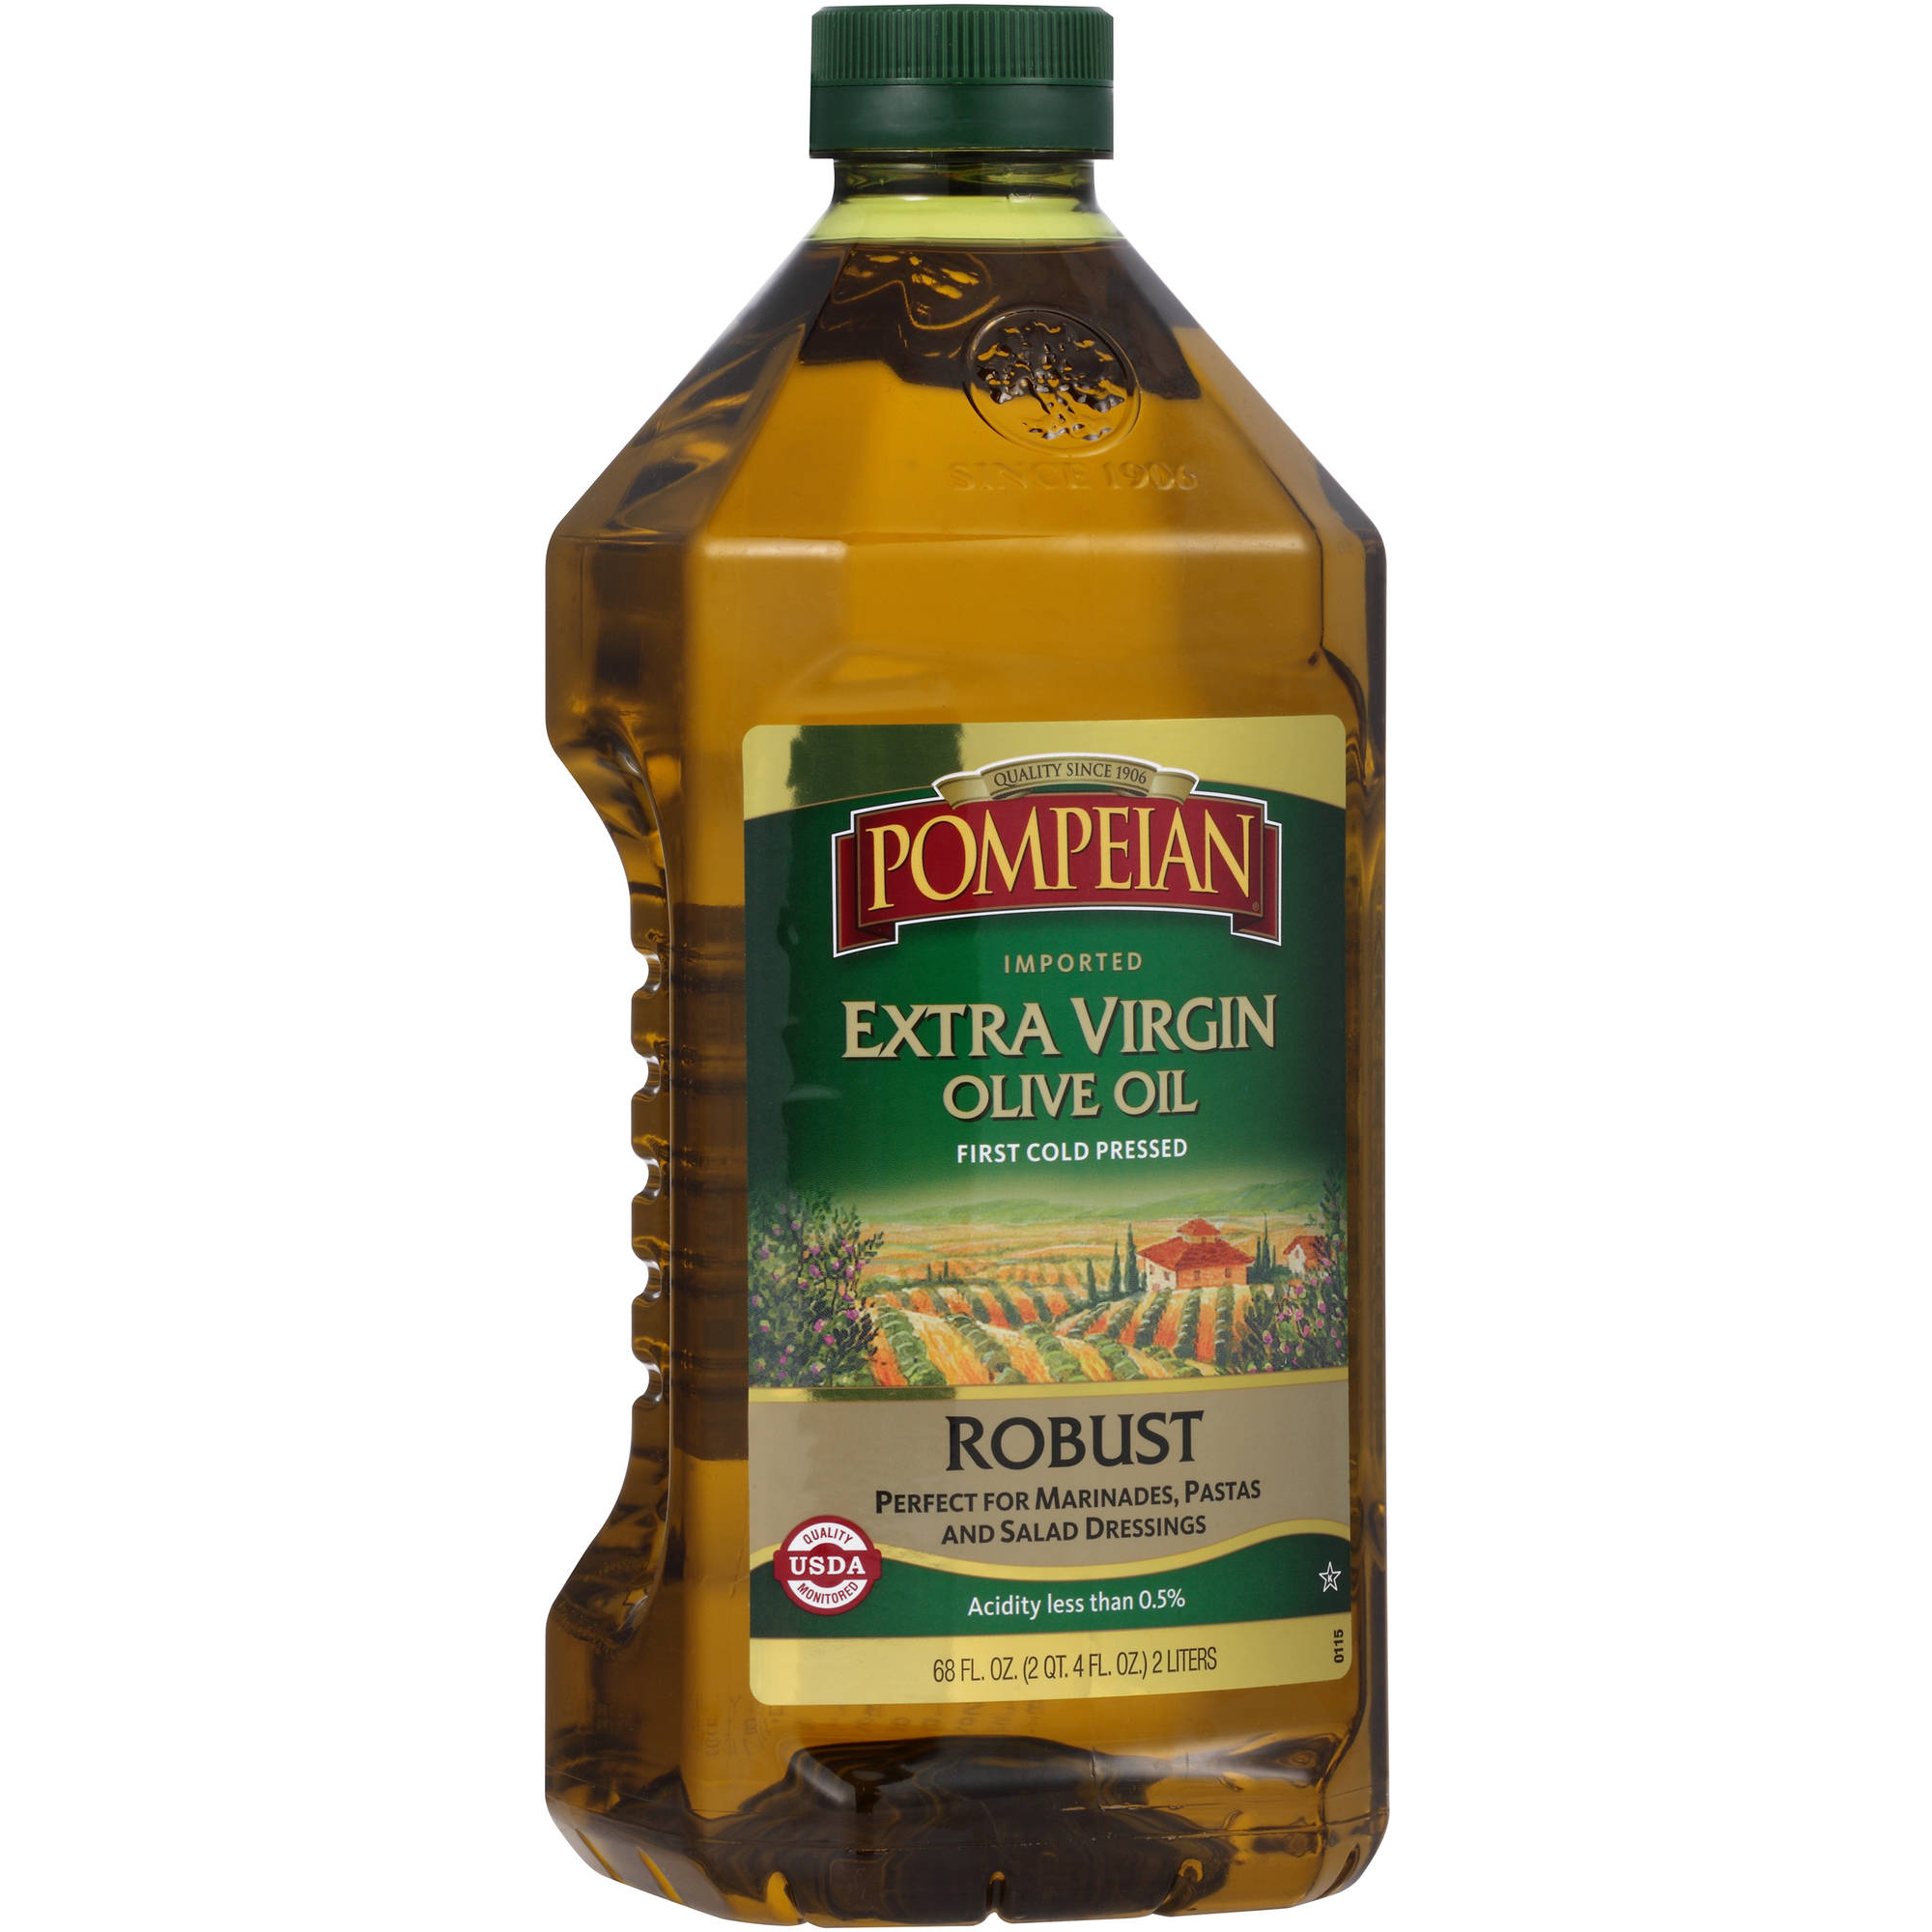 Pompeian® Robust Imported Extra Virgin Olive Oil 68 fl. oz. Plastic Bottle